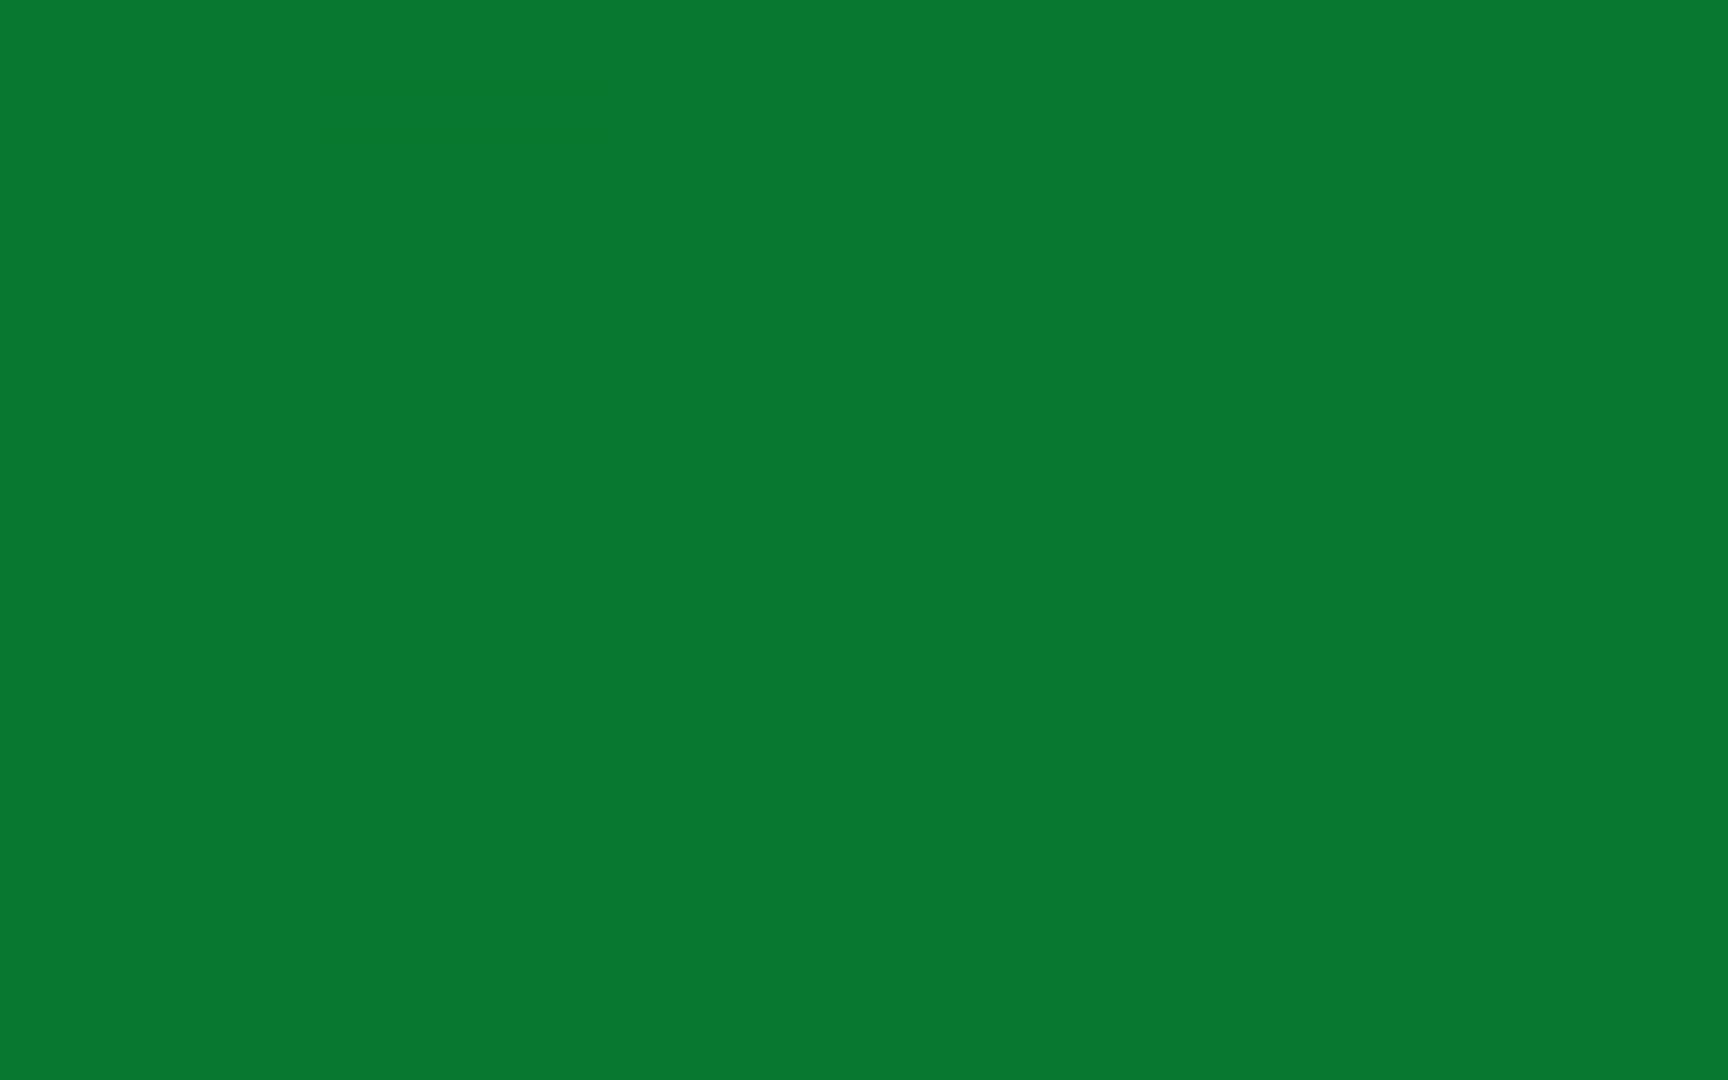 1728x1080 - Solid Green 34